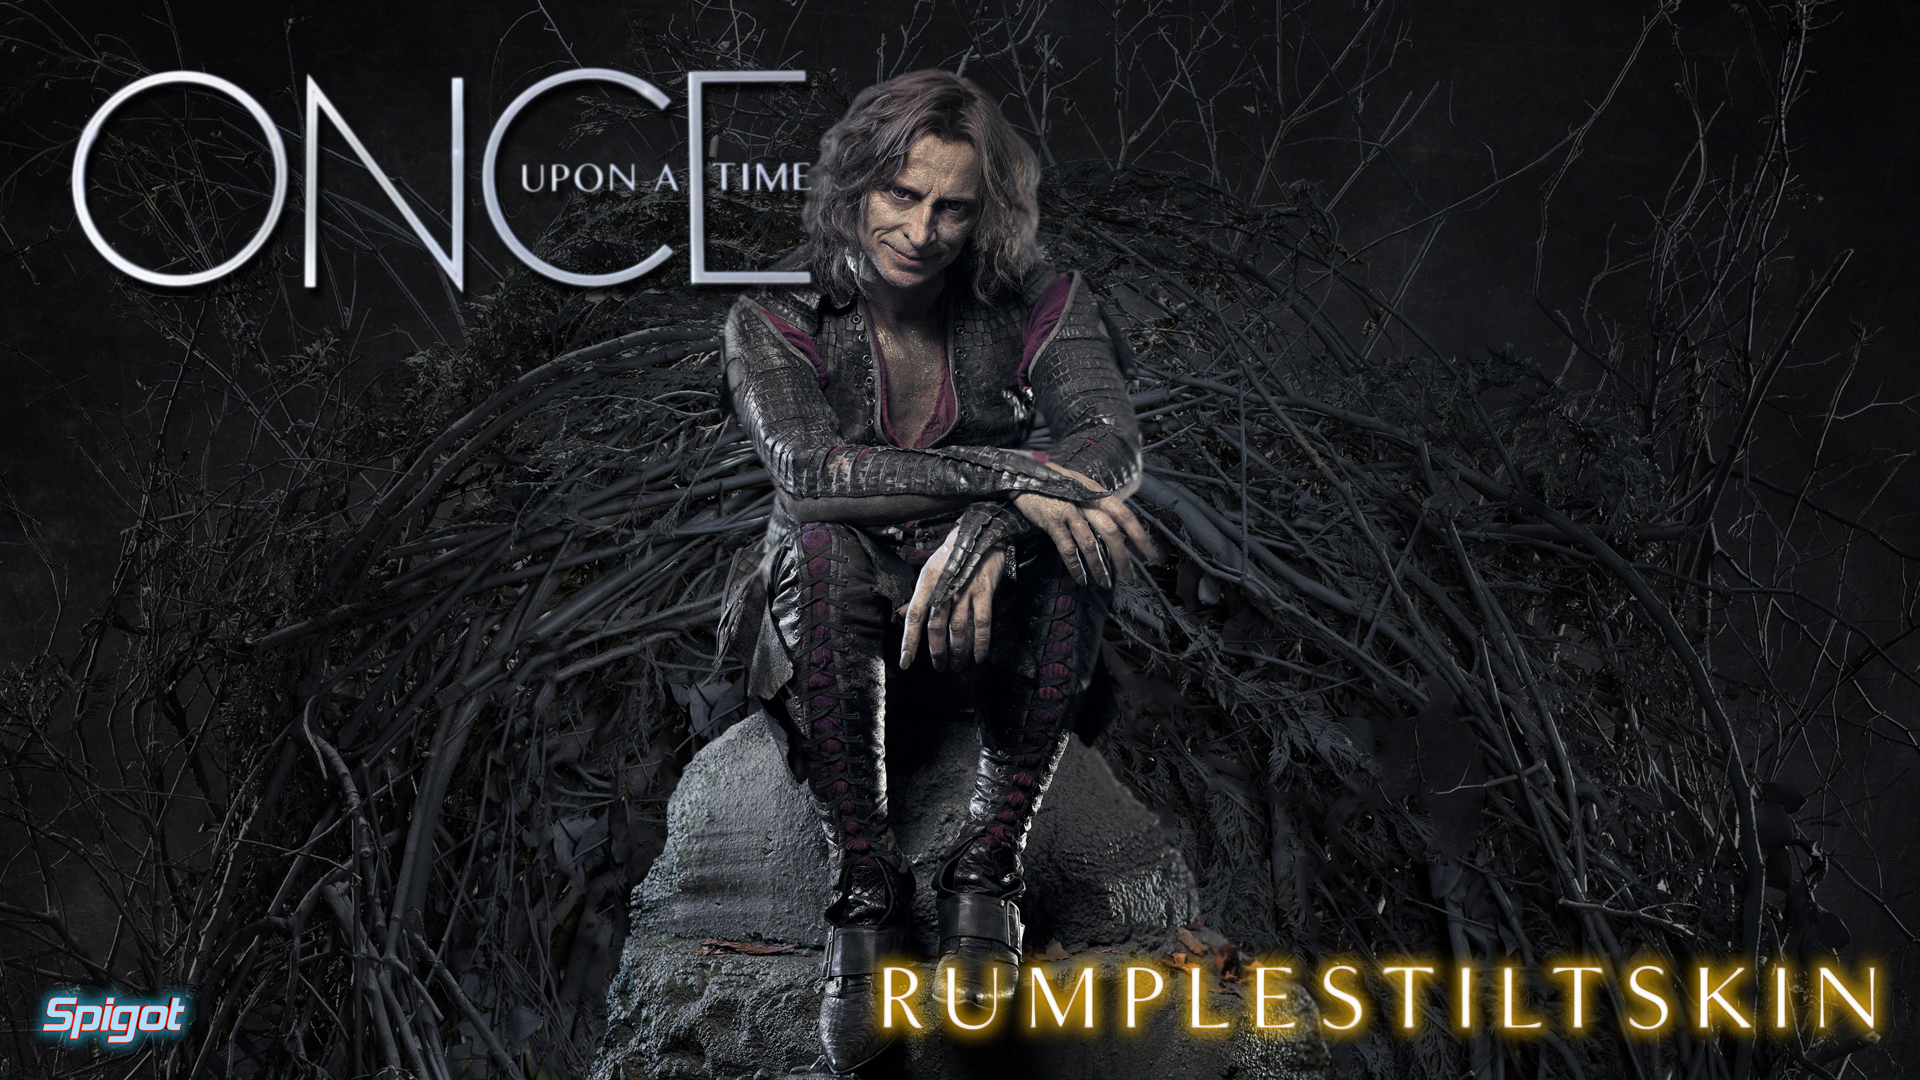 Free Download Another Once Upon A Time Wallpaper Requested By